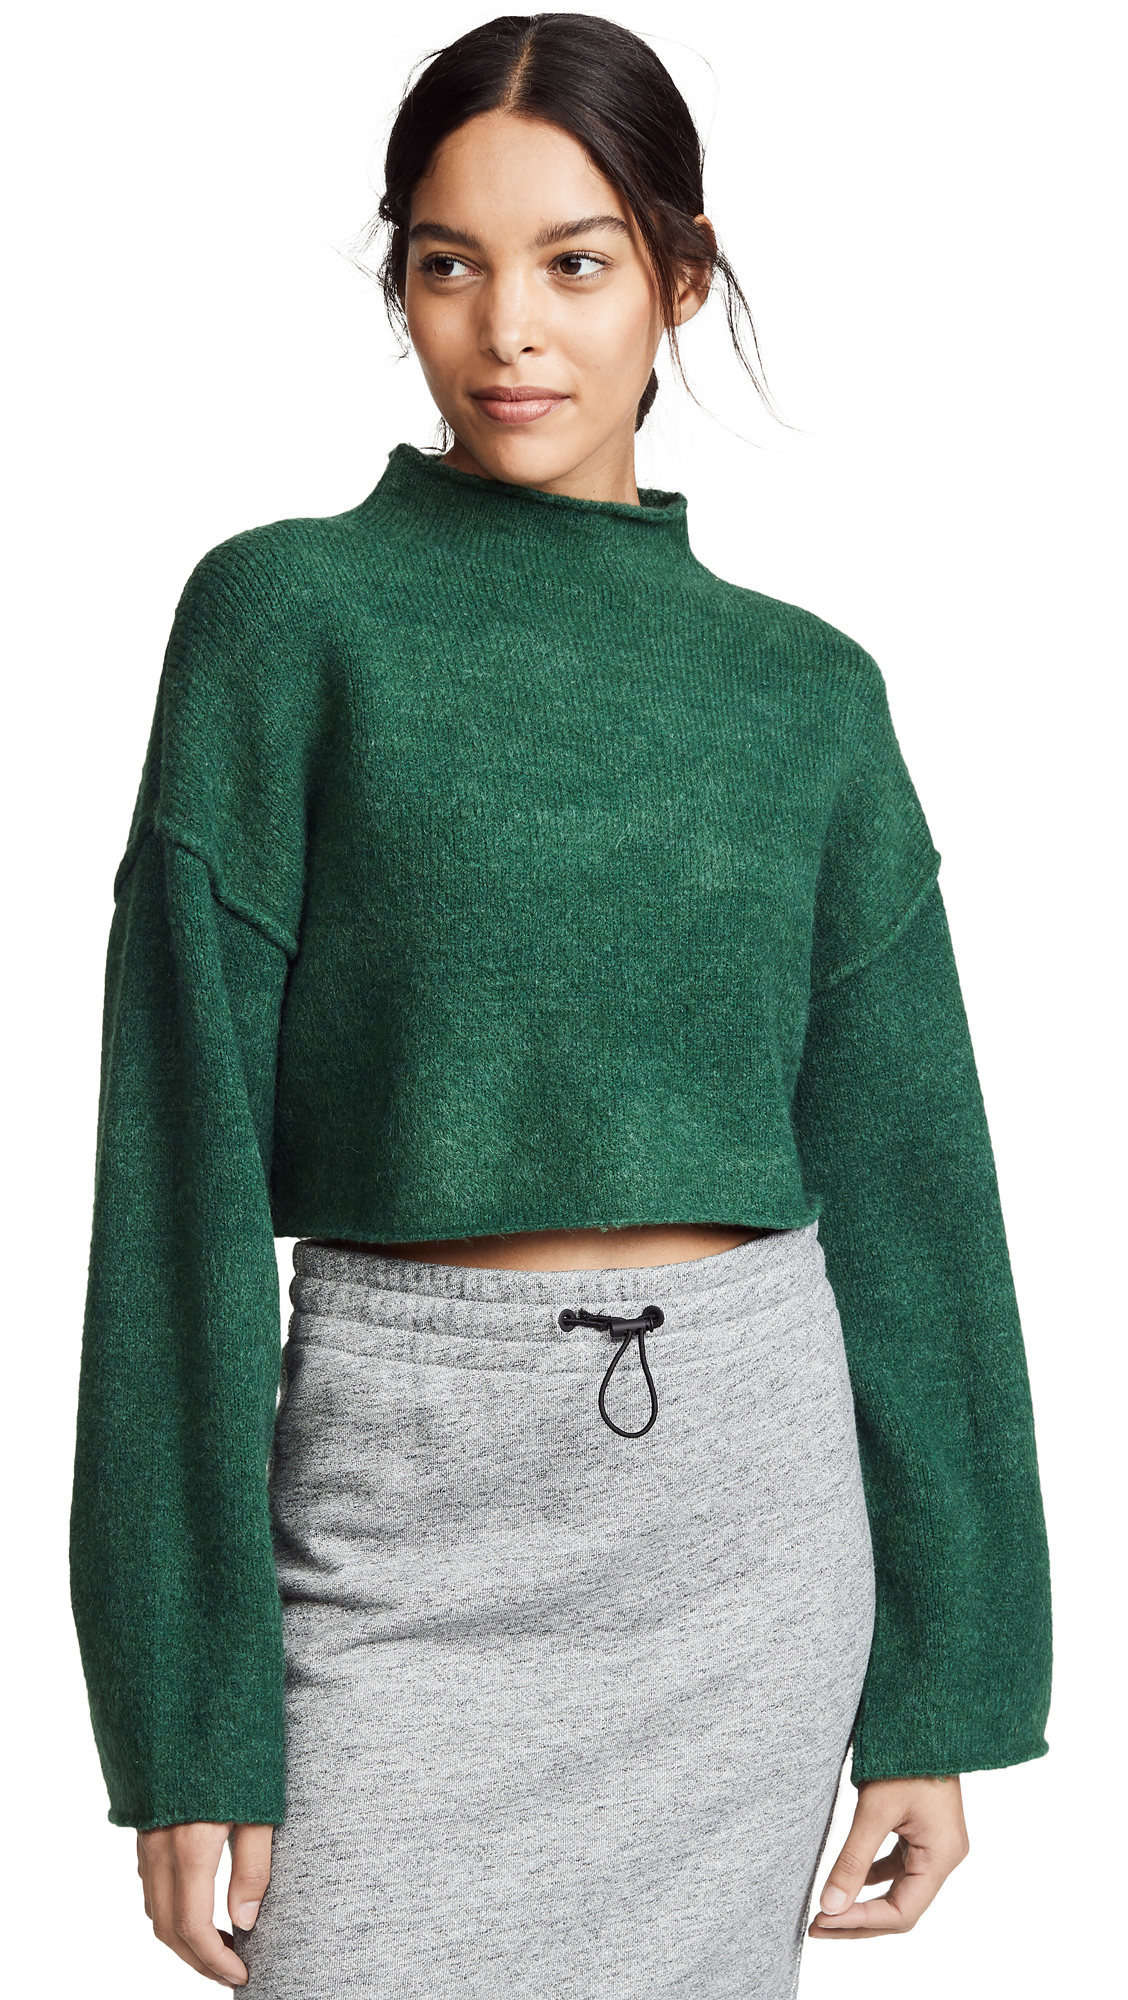 Free People Lost In A Forest Sweater - Evergreen